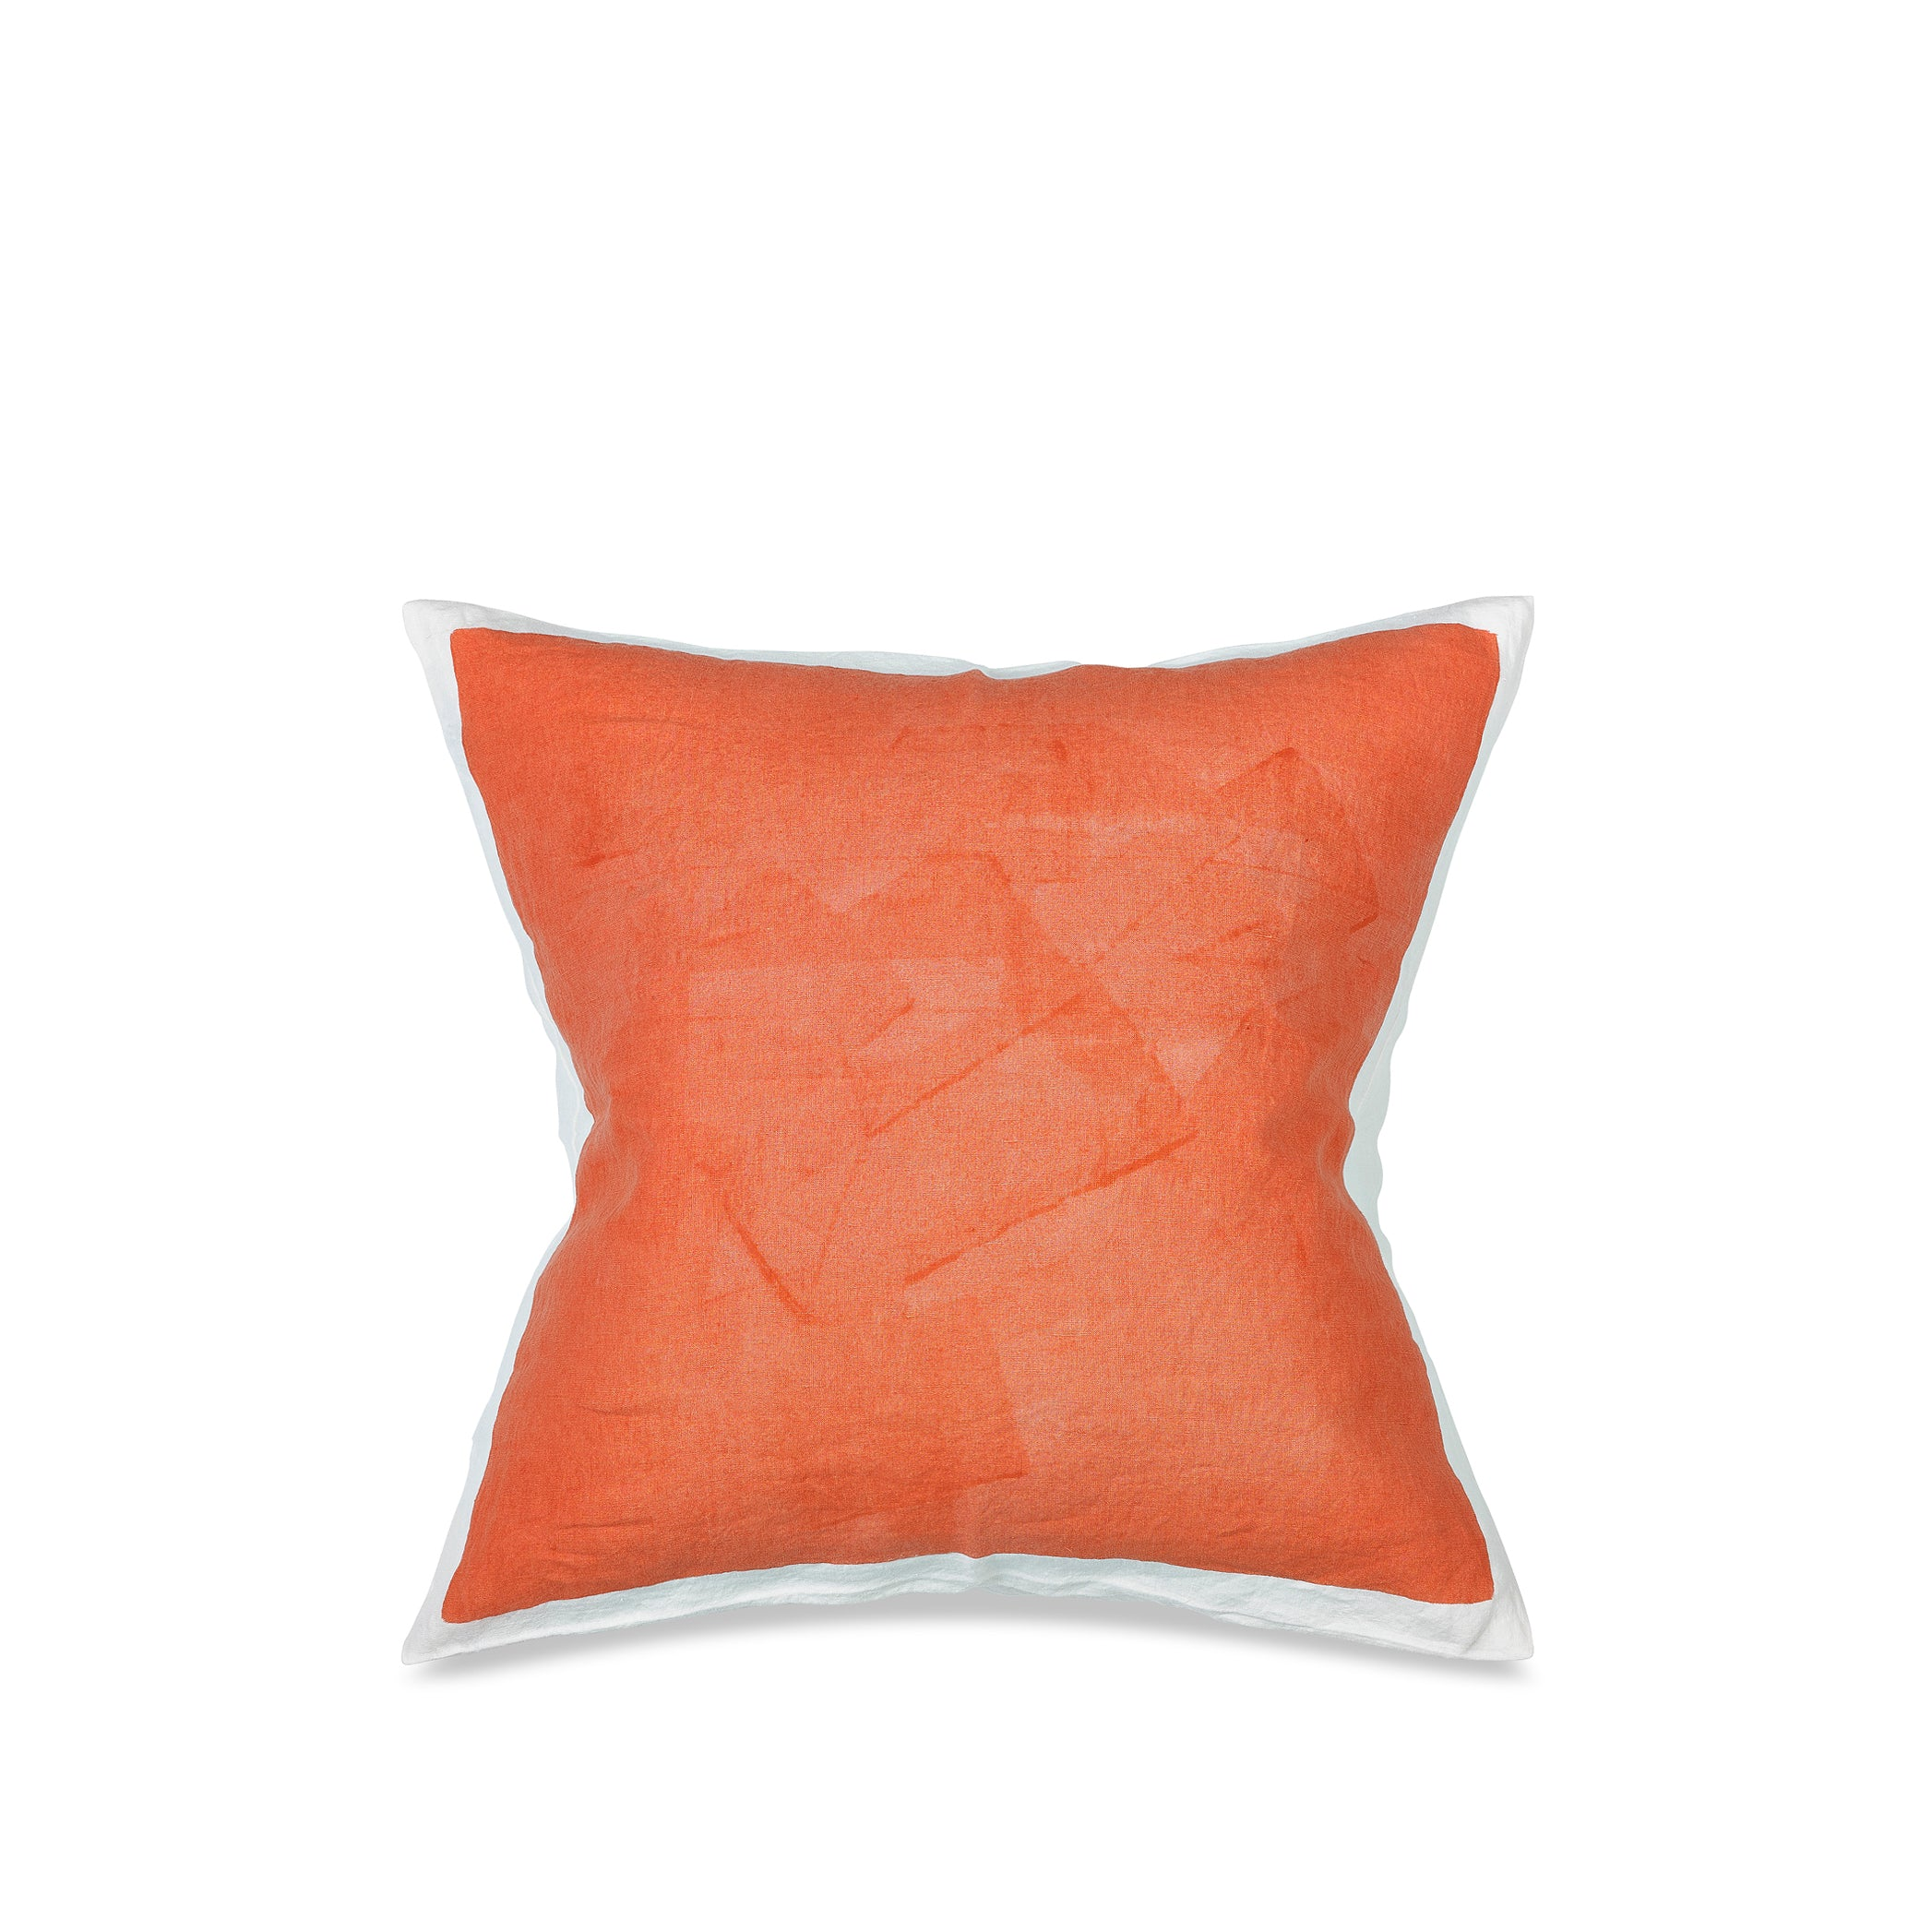 Hand Painted Linen Cushion in Coral, 60cm x 60cm